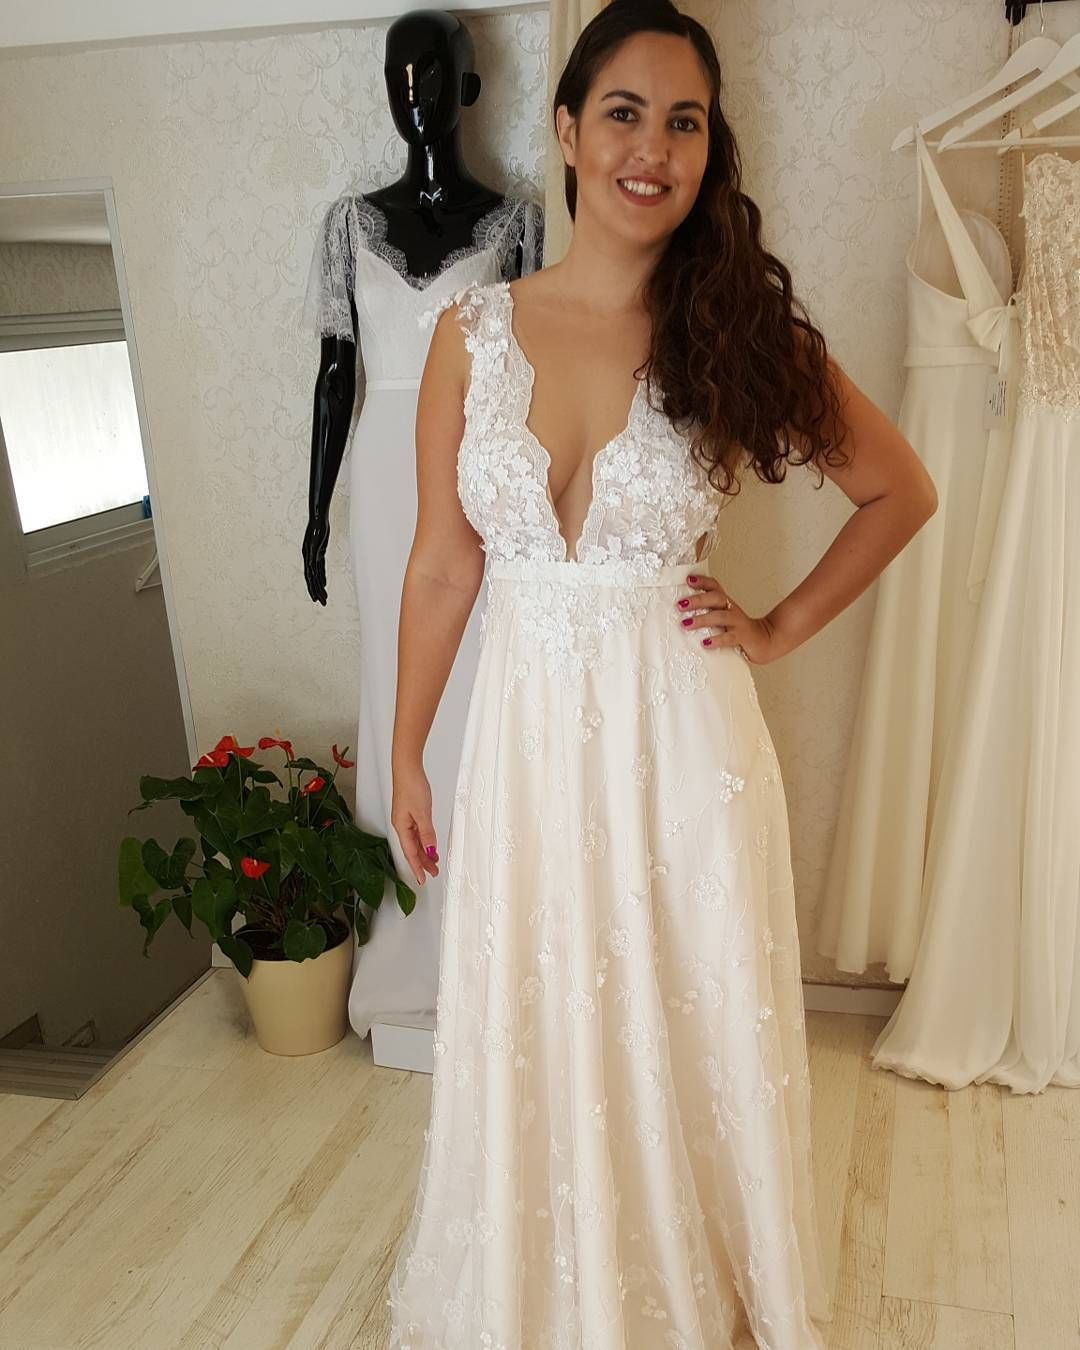 Sexy plus size wedding dresses can be custom made to order for you in any size or shape you need.  We are USA dressmakers who provide curvy brides all types of beautiful #plussizeweddingdresses they can afford. You can also have a #replica of a couture bridal gown made for far less than the original by our design firm.  Just contact us directly for details at www.dariuscordell.com